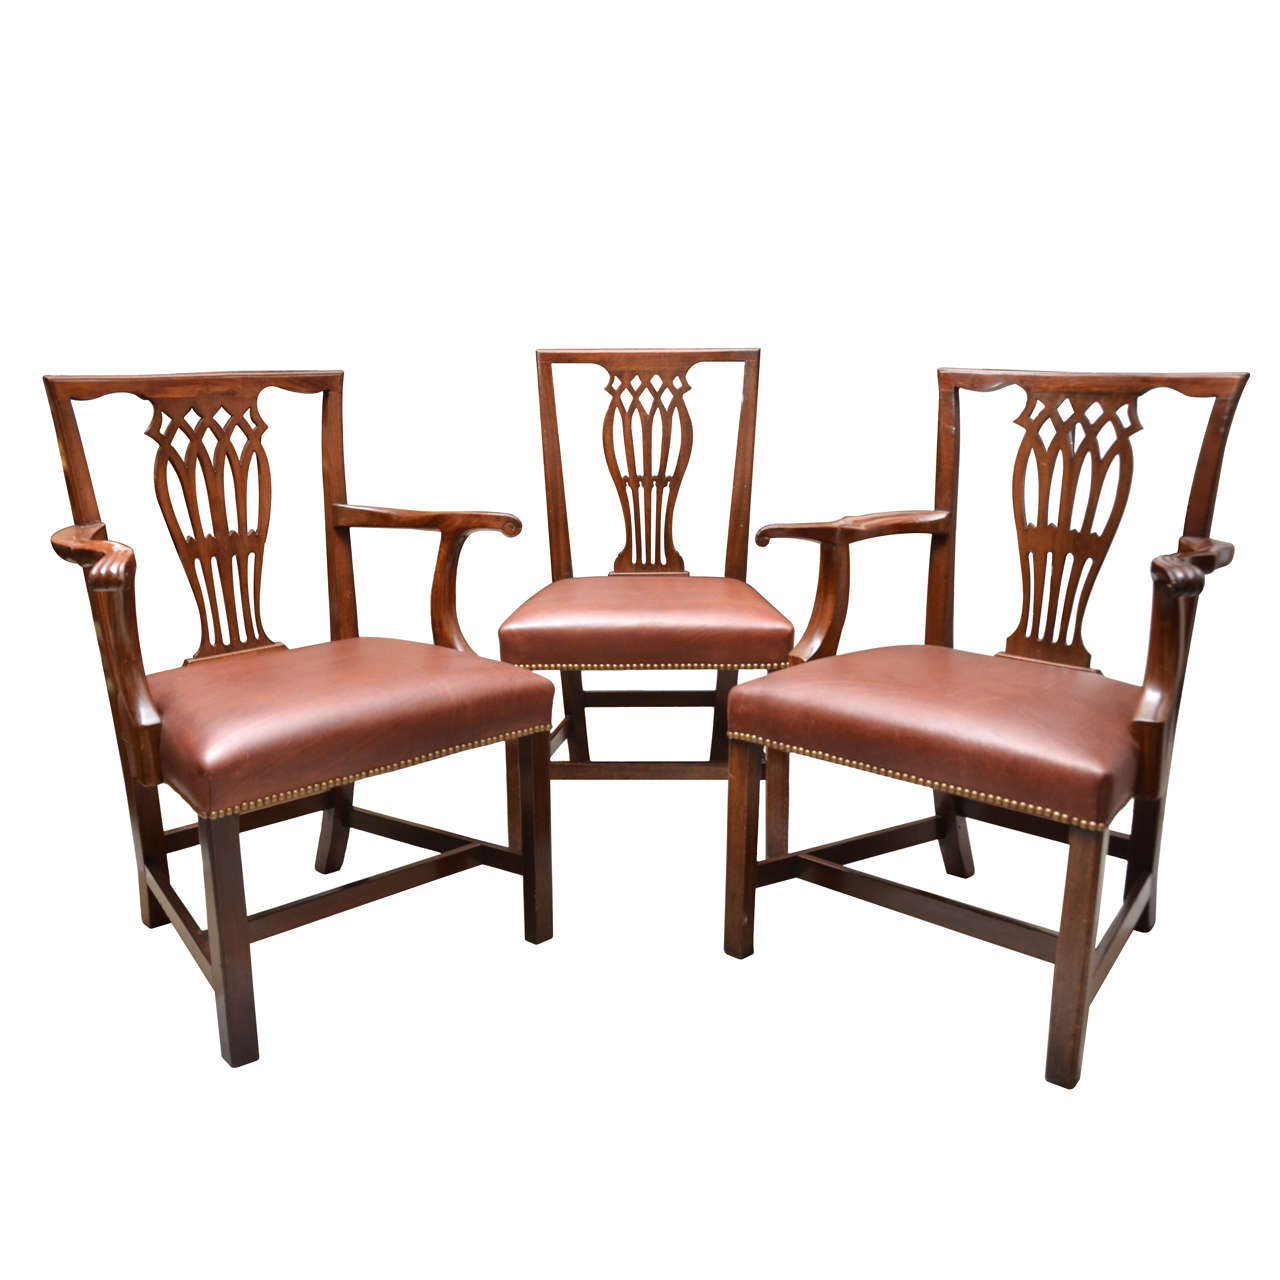 Late 18th Early 19th Century English Set Of 12 Mahogany Dining Chairs 1